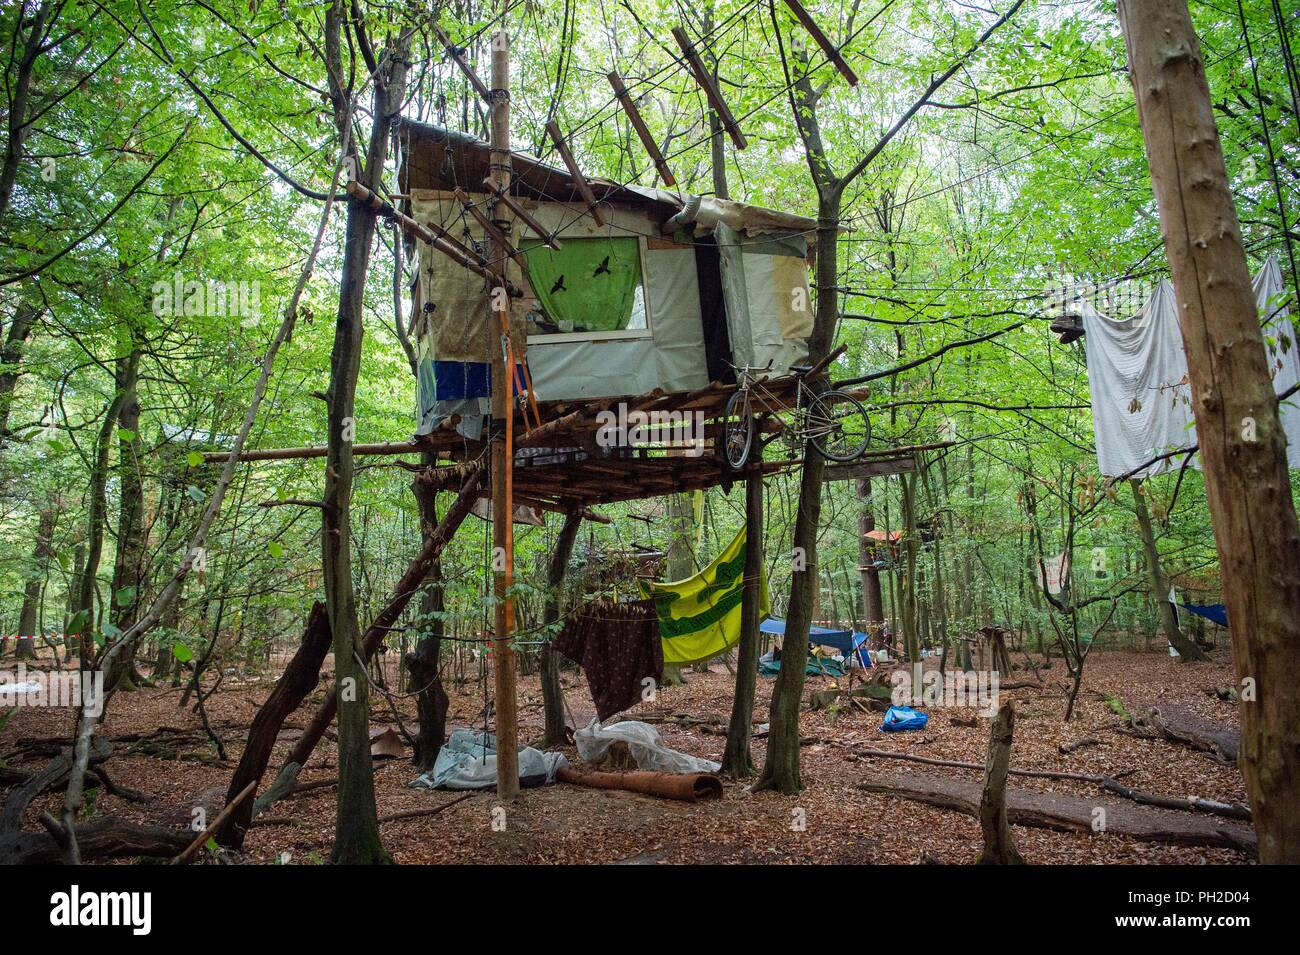 Germany, Morschenich. 29th Aug, 2018. Activists have built a tree house in the Hambach Forest. The camp will demonstrate against the clearing of the Hambach forest for opencast lignite mining. North Rhine-Westphalia's Prime Minister Laschet (CDU) will be asking the press questions on current political issues on 30.09.2018. In the centre is probably the heated location in the Hambach Forest. Credit: Christophe Gateau/dpa/Alamy Live News - Stock Image